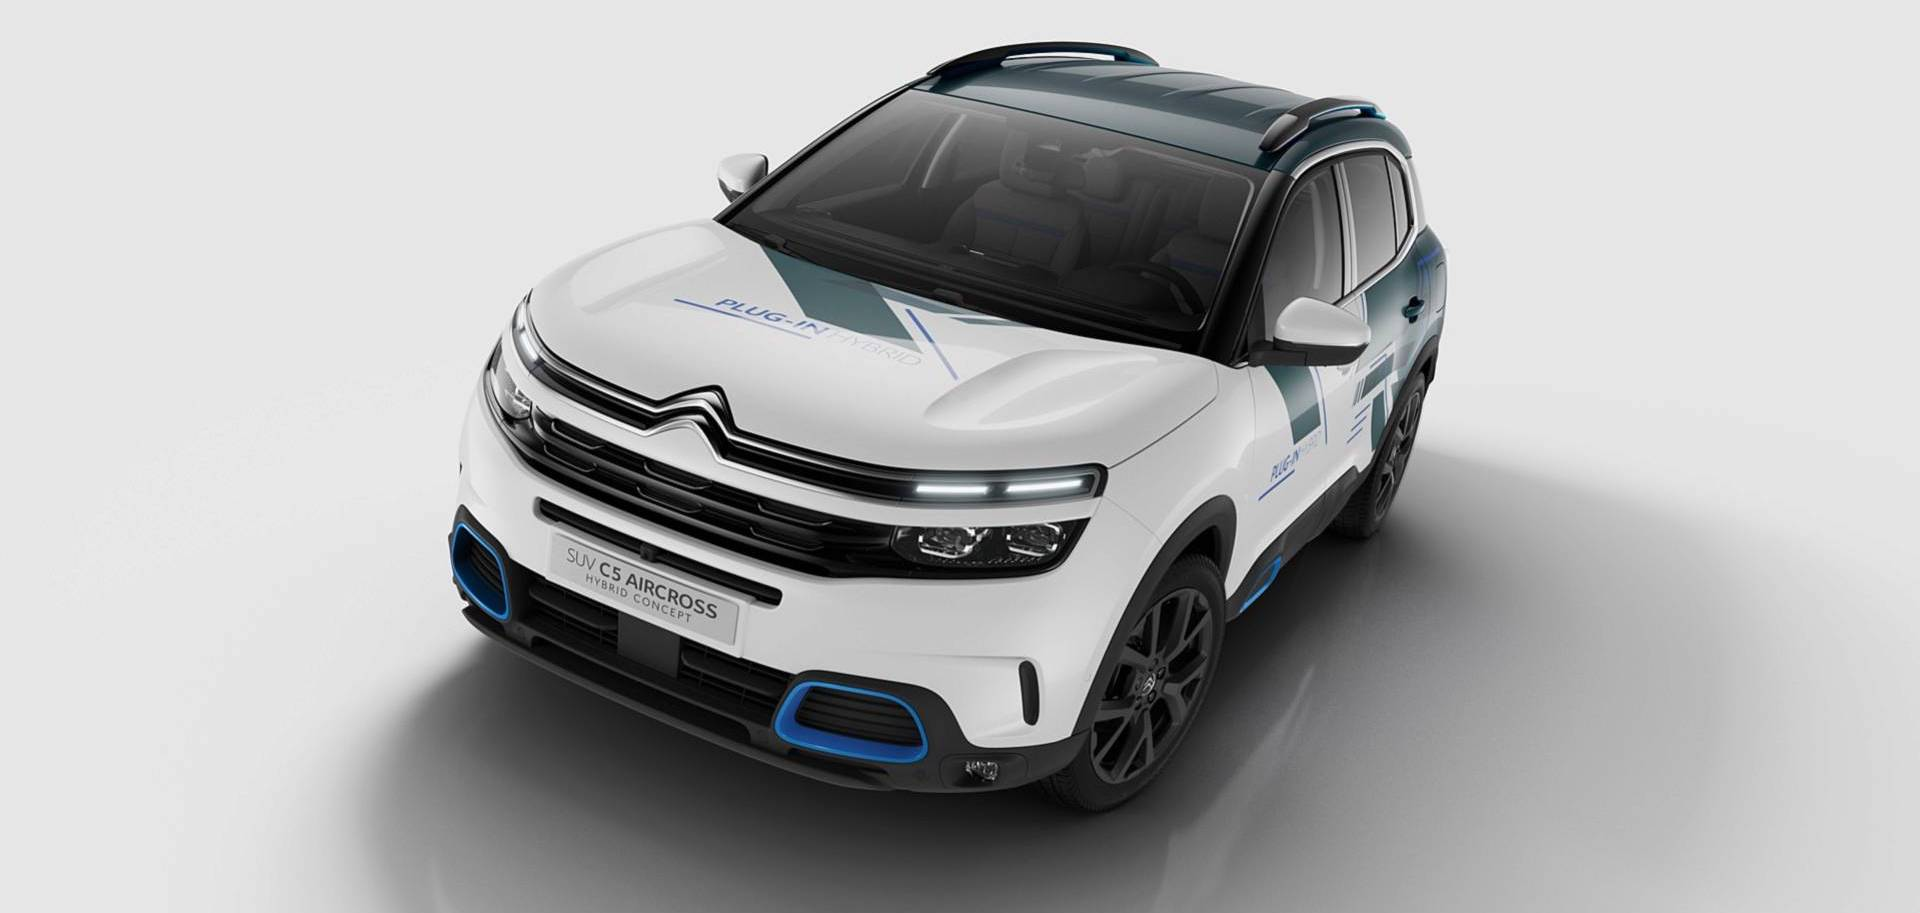 Citroen Shows Almost Production-Ready C5 Aircross Hybrid Concept